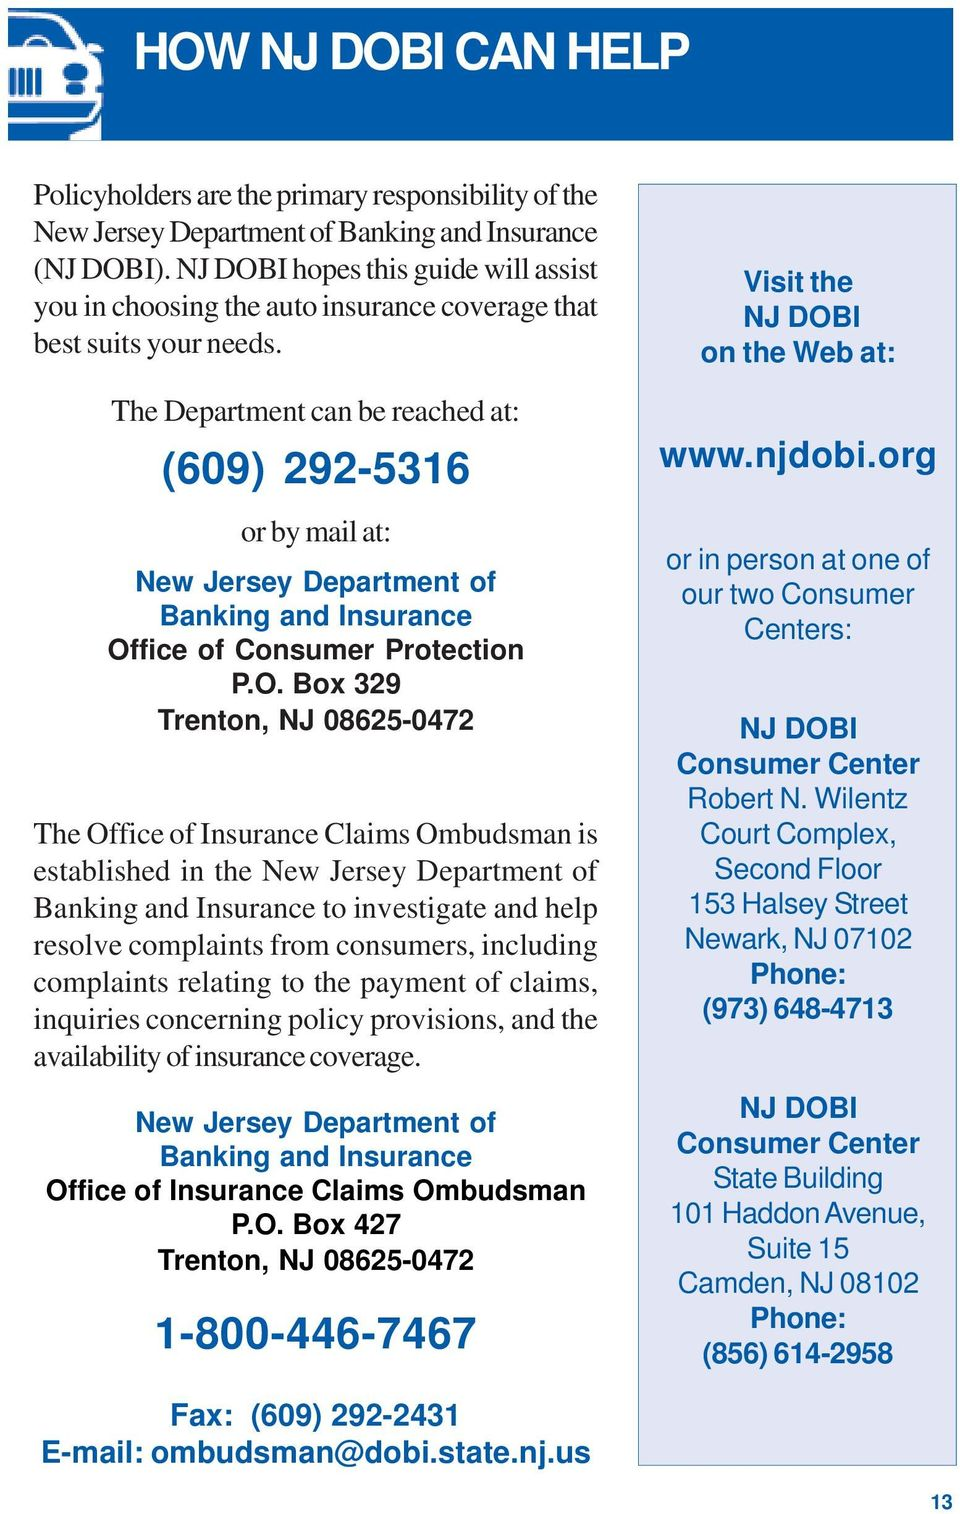 The Department can be reached at: (609) 292-5316 or by mail at: New Jersey Department of Banking and Insurance Of